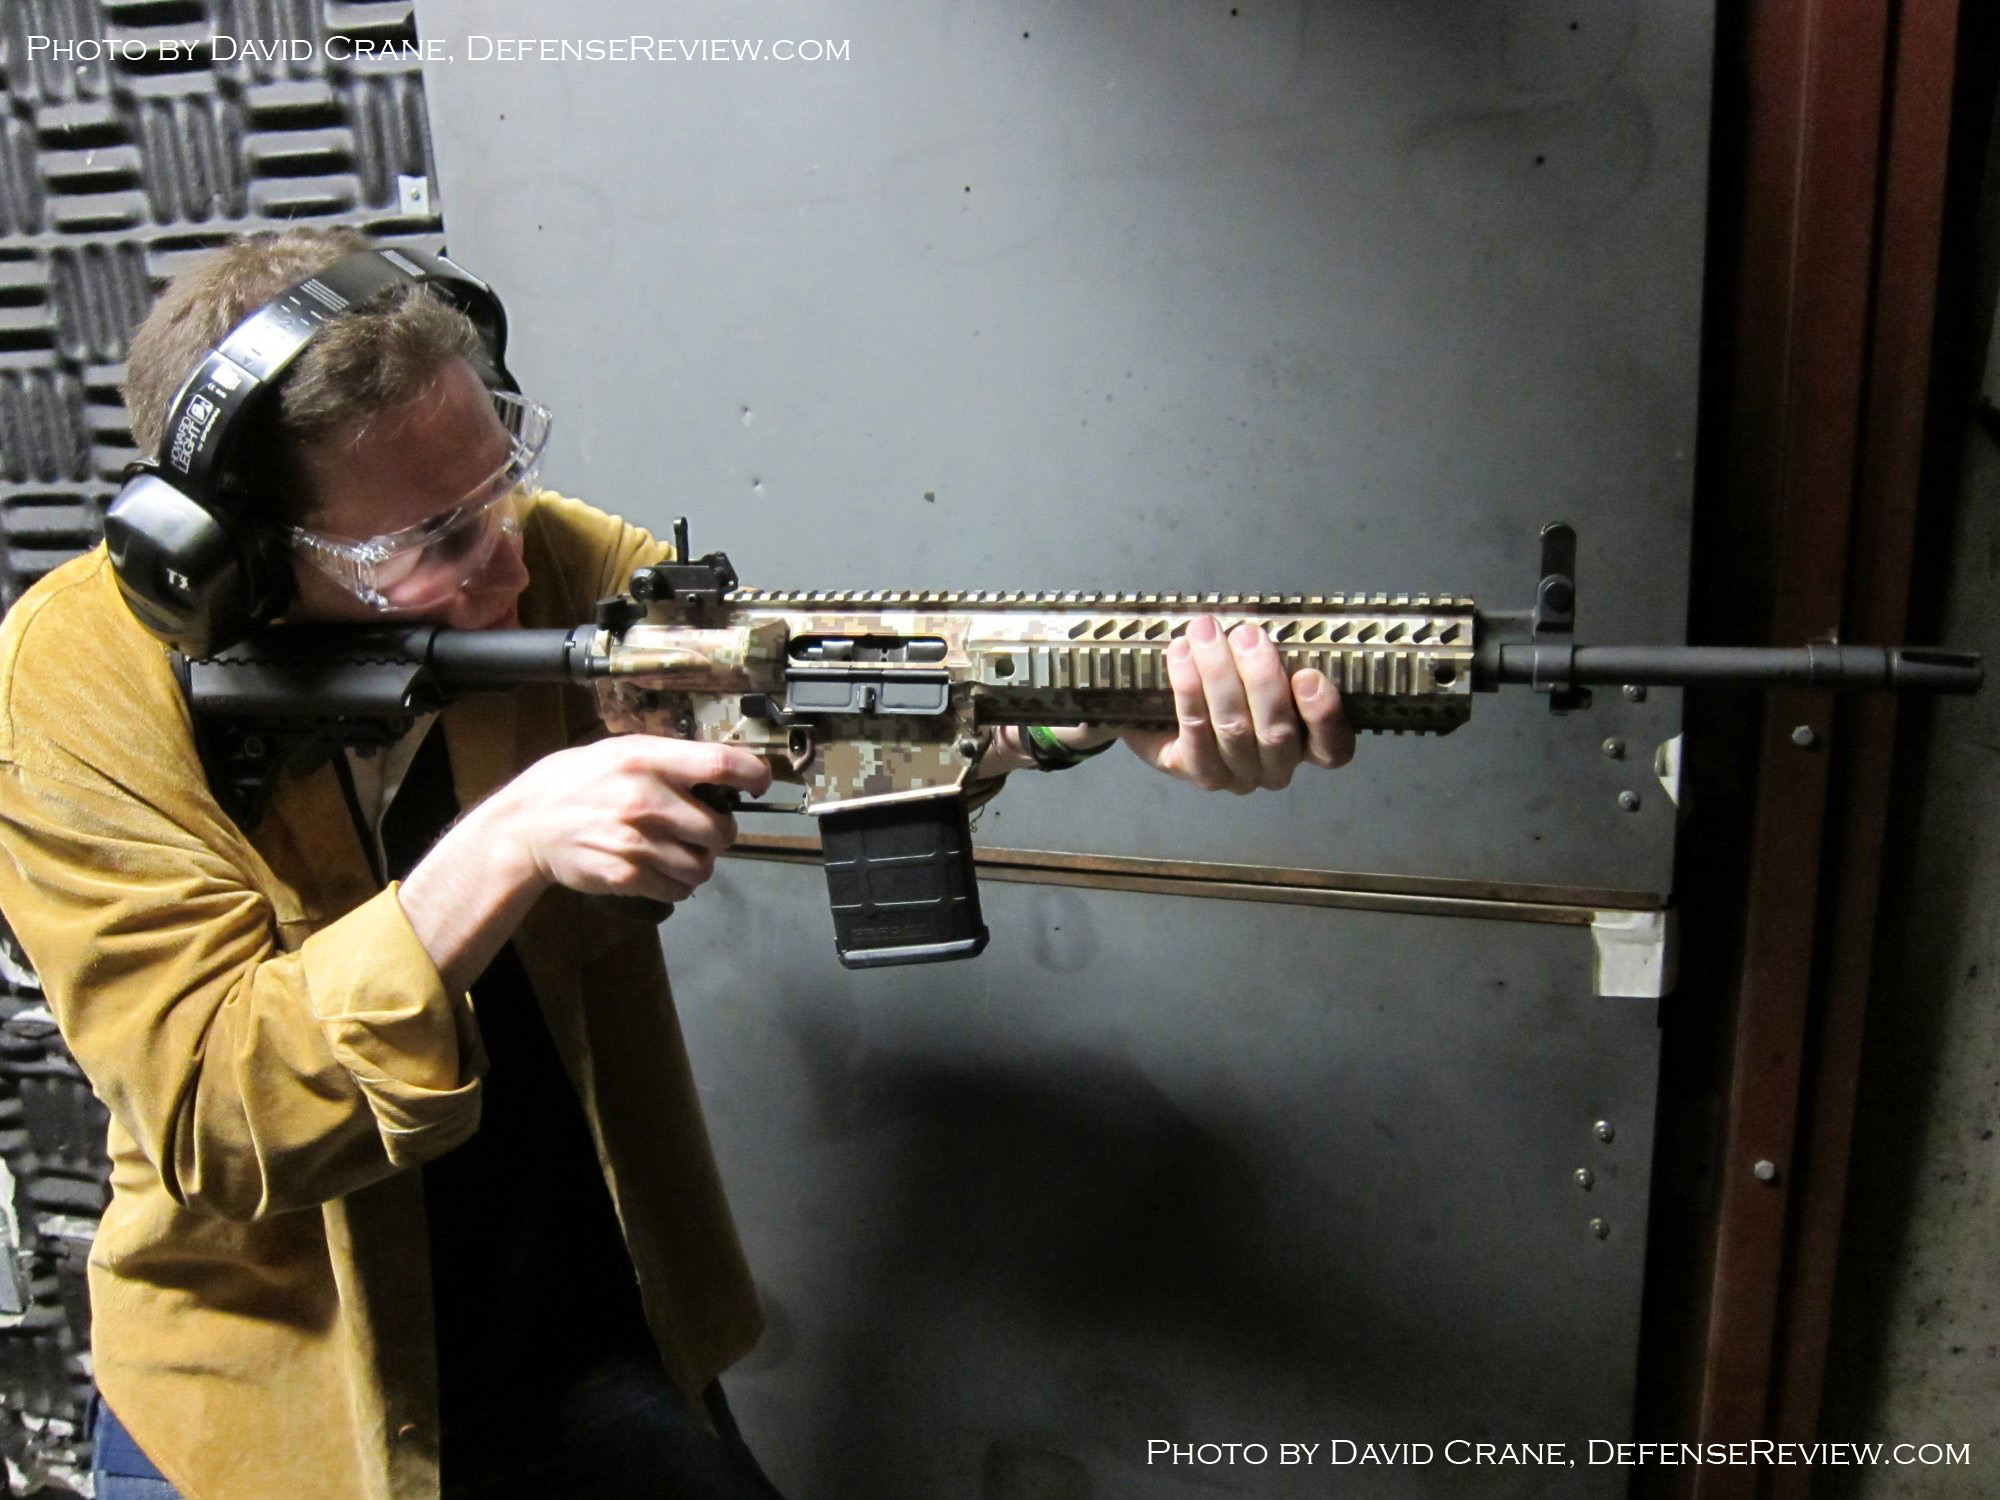 Colt CM901 AR Carbine SBR 7.62mm David Crane DefenseReview.com 3 <!  :en  >DR Exclusive First Look!: SCAR Who? Meet the Colt Modular Carbine (CMC) Model CM901 Multi Caliber 7.62mm NATO Battle Rifle / 5.56mm NATO Assault Rifle for U.S. Military Special Operations Forces (SOF) and General Infantry Forces (GIF). DefenseReview (DR) Reports (Photos and Video!) <!  :  >